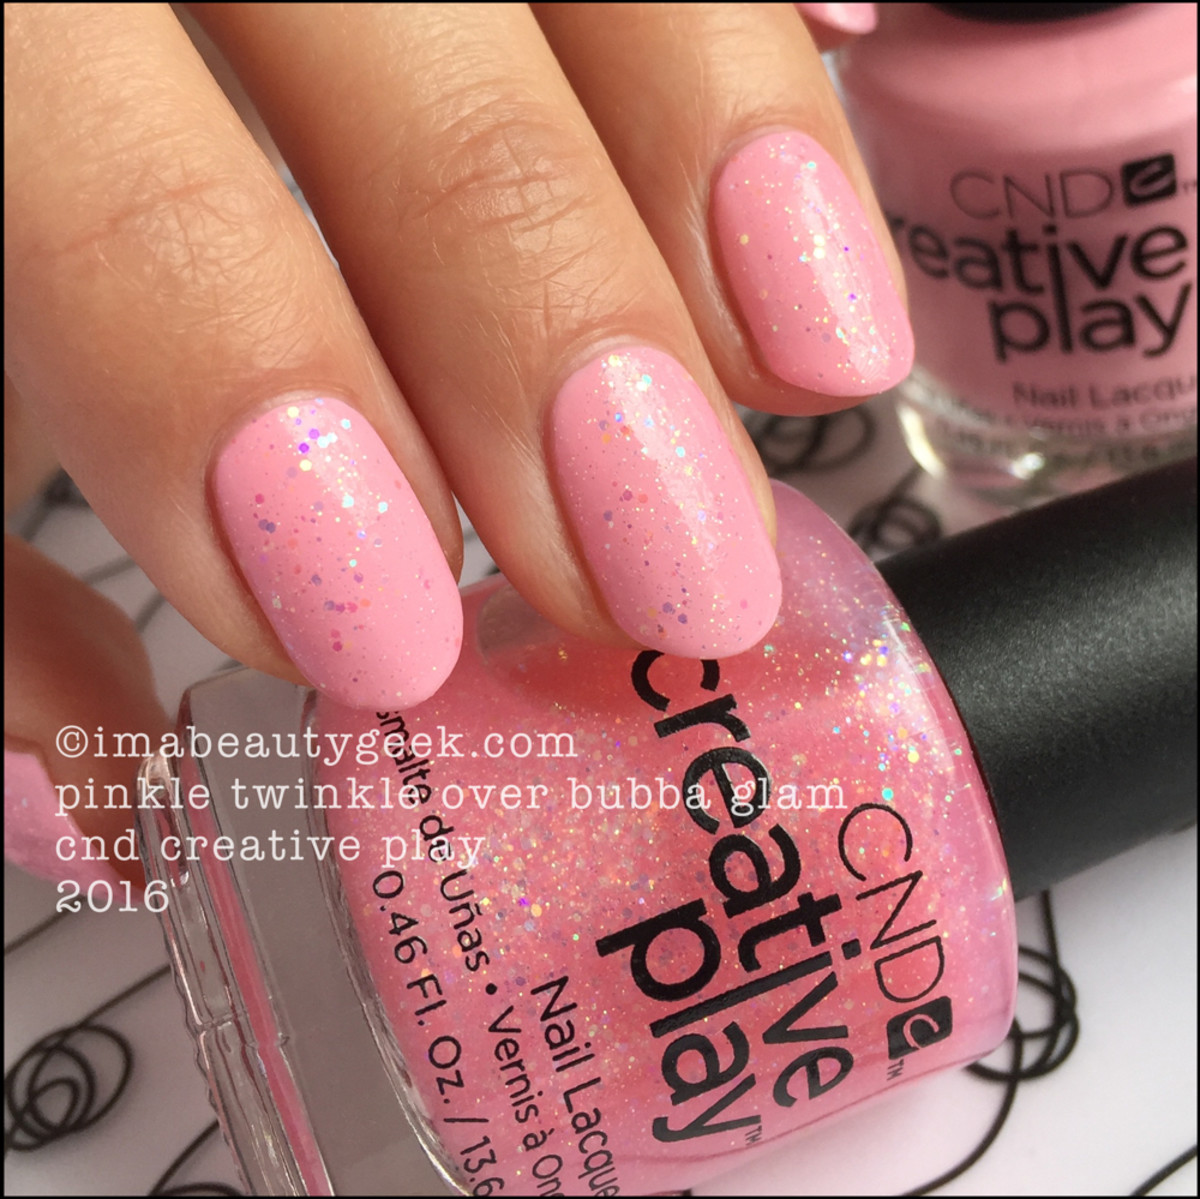 CND Creative Play Pinkle Twinkle over Bubba Glam_CND Creative Play Nail Polish Swatches